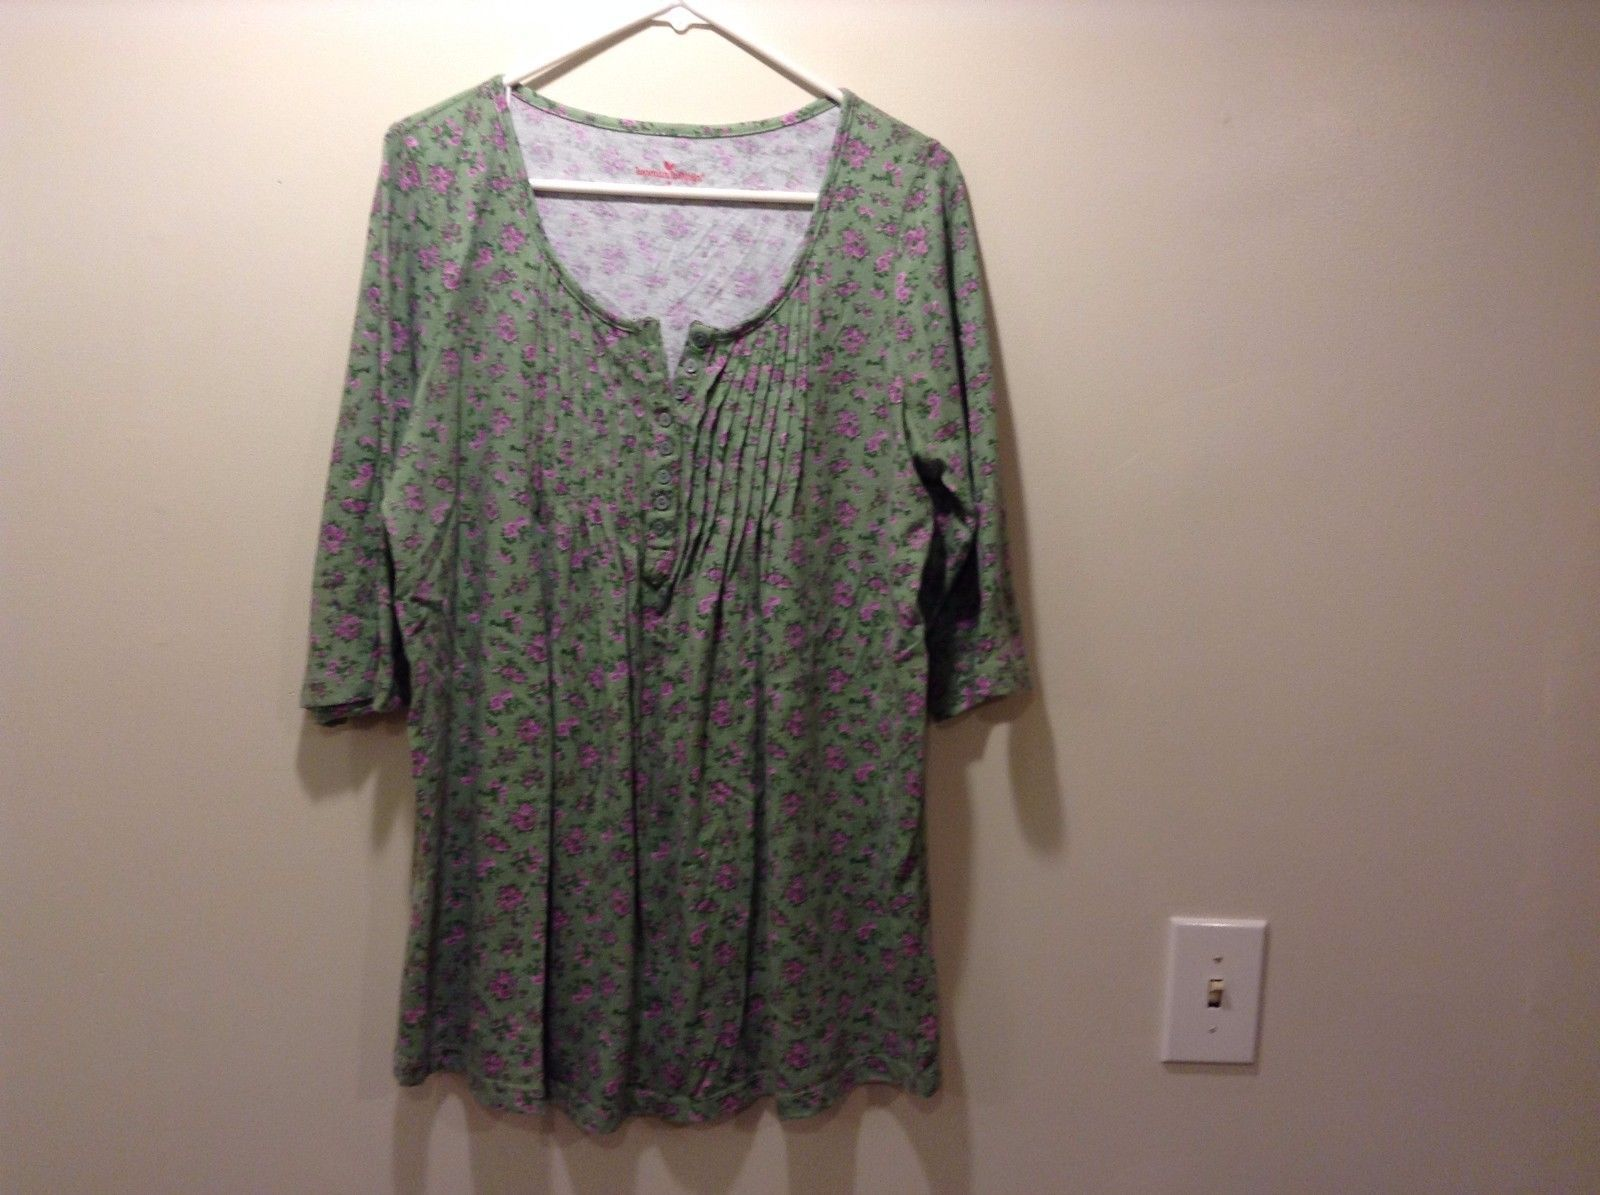 Woman Within Green w Pink Floral Design Dress or Blouse Sz M